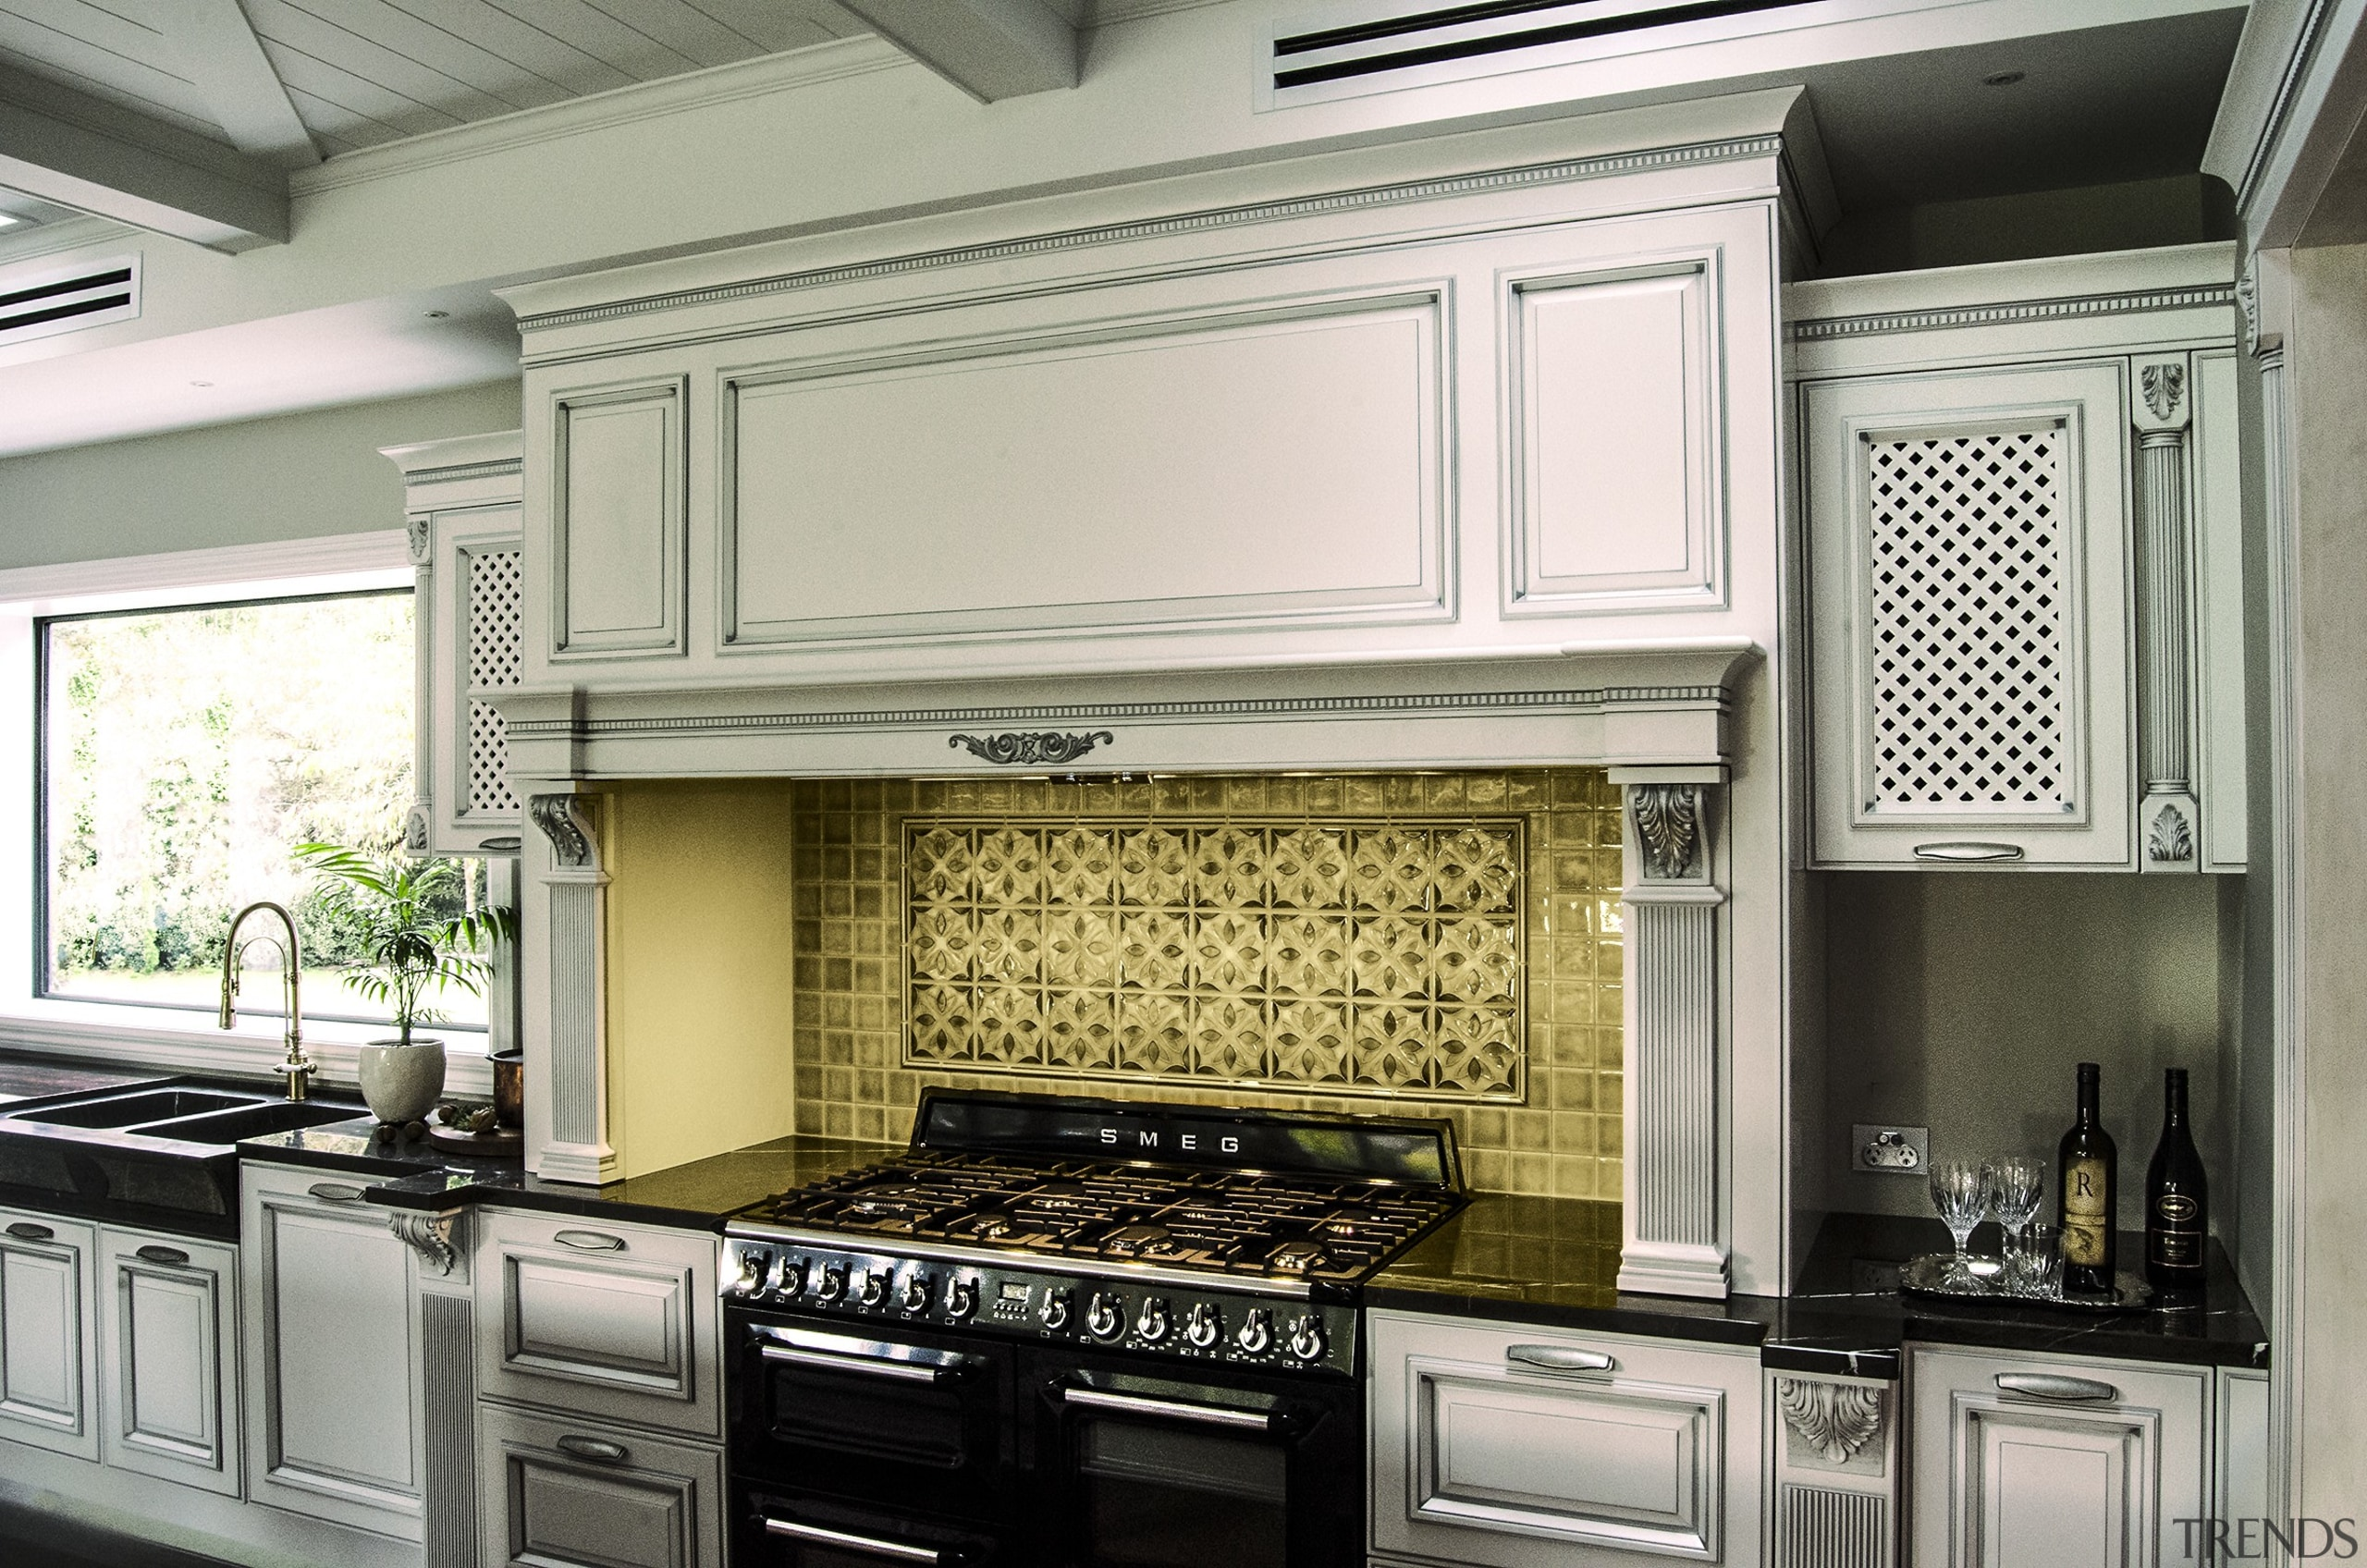 Goodland Residence 1 For more information, please visit cabinetry, countertop, cuisine classique, home appliance, interior design, kitchen, kitchen appliance, kitchen stove, gray